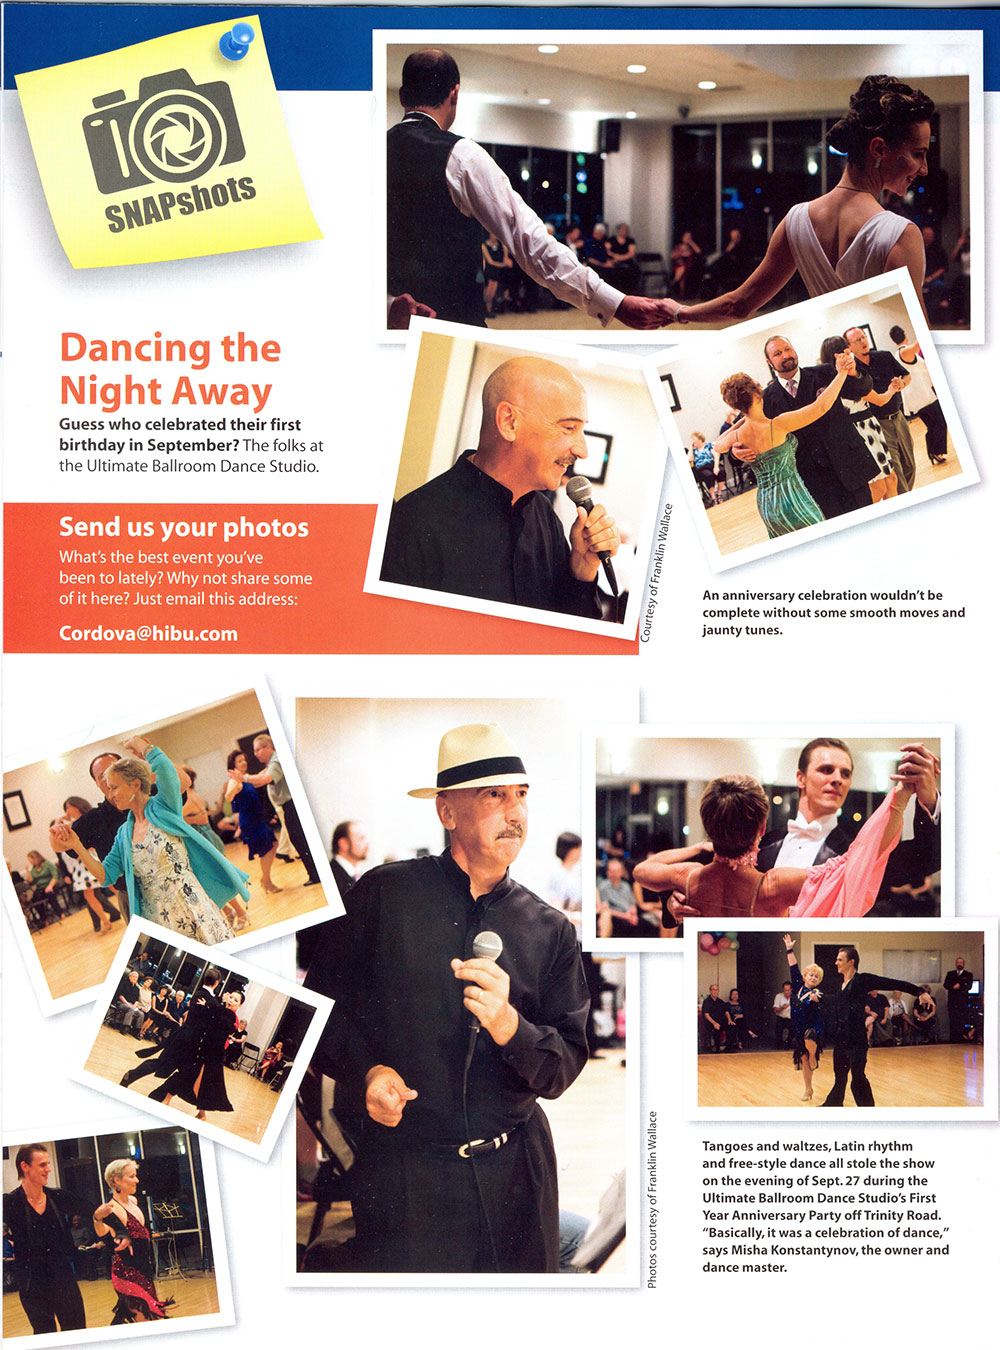 Cordova Life Magazine - December 2013 - Ultimate Ballroom